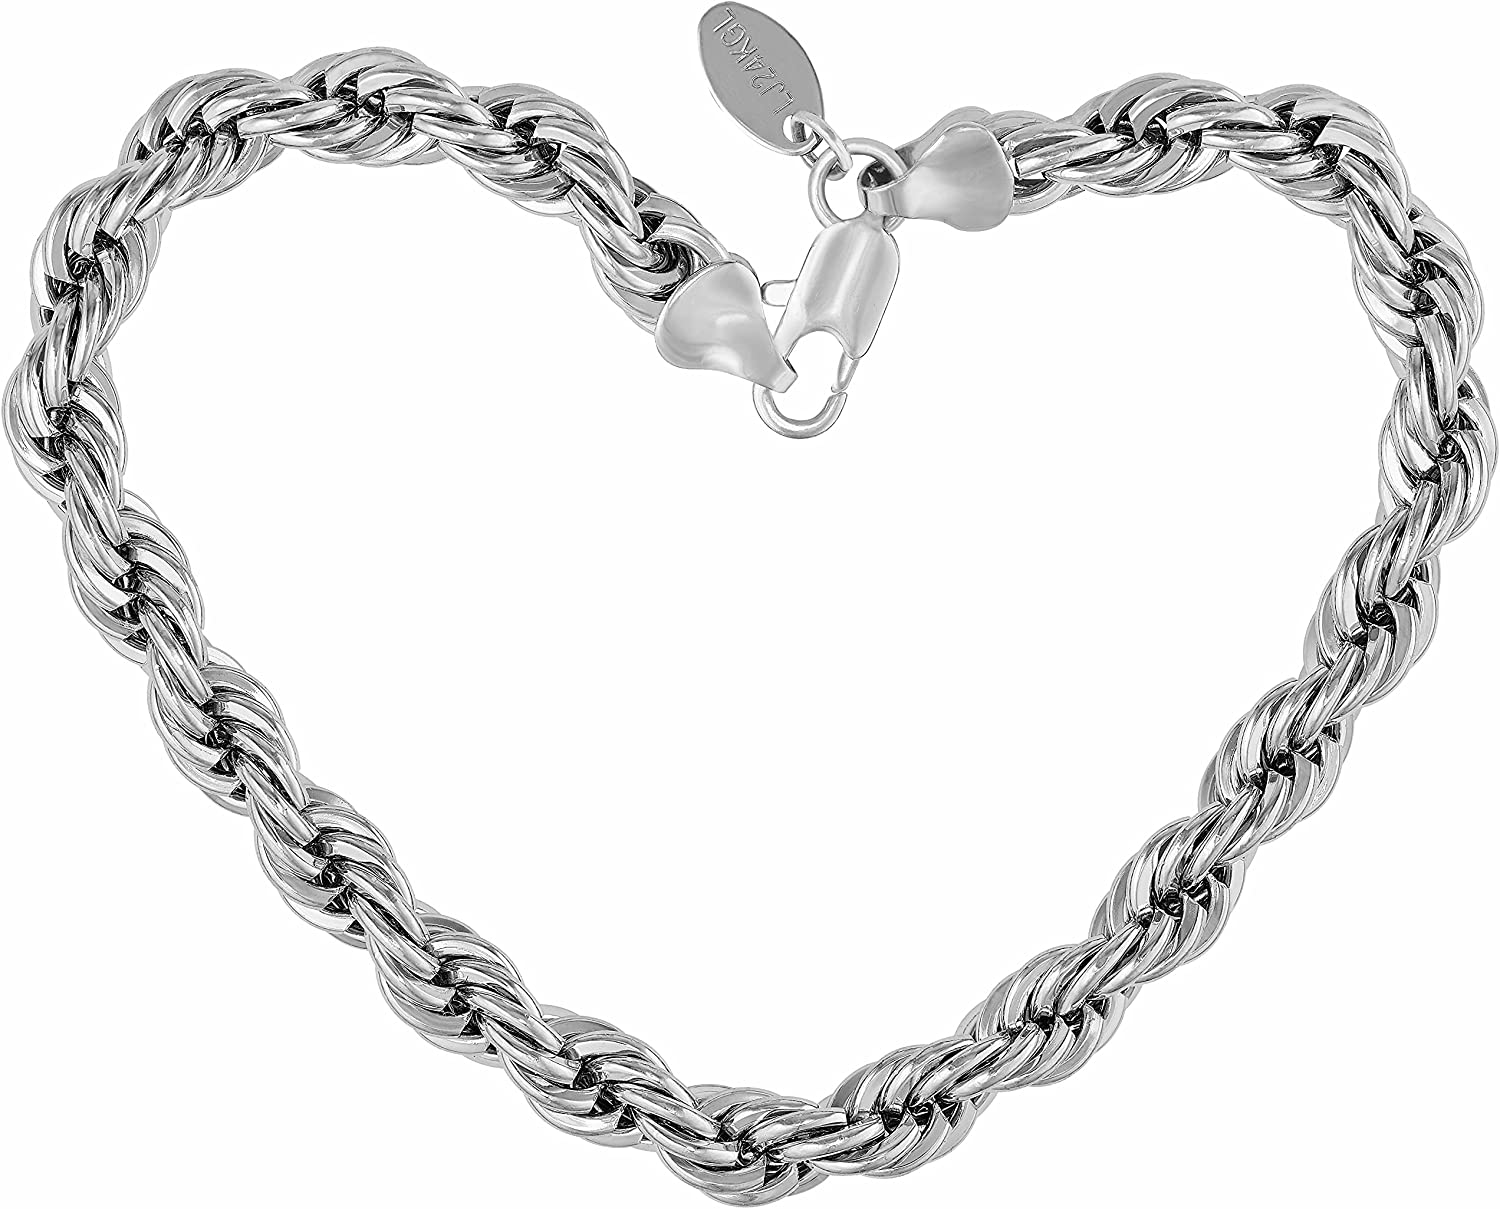 LIFETIME JEWELRY 7mm Regular discount Rope Chain Bracelet 24K Max 41% OFF and R for Women Men